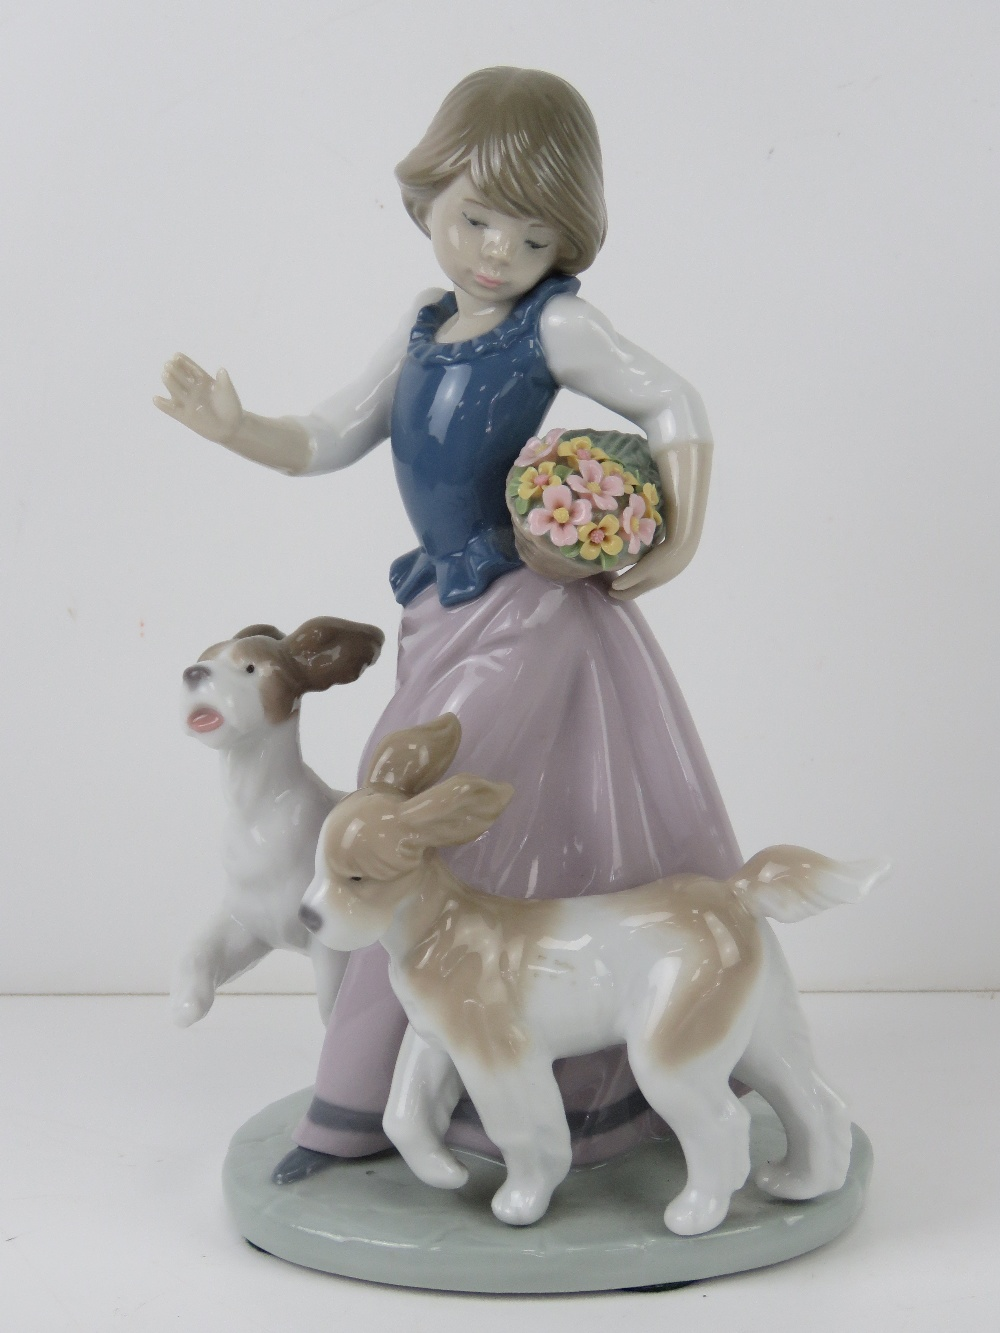 Lladro figurine 5761 'Out For A Romp' a girl with two dogs and a basket of flowers under her arm,